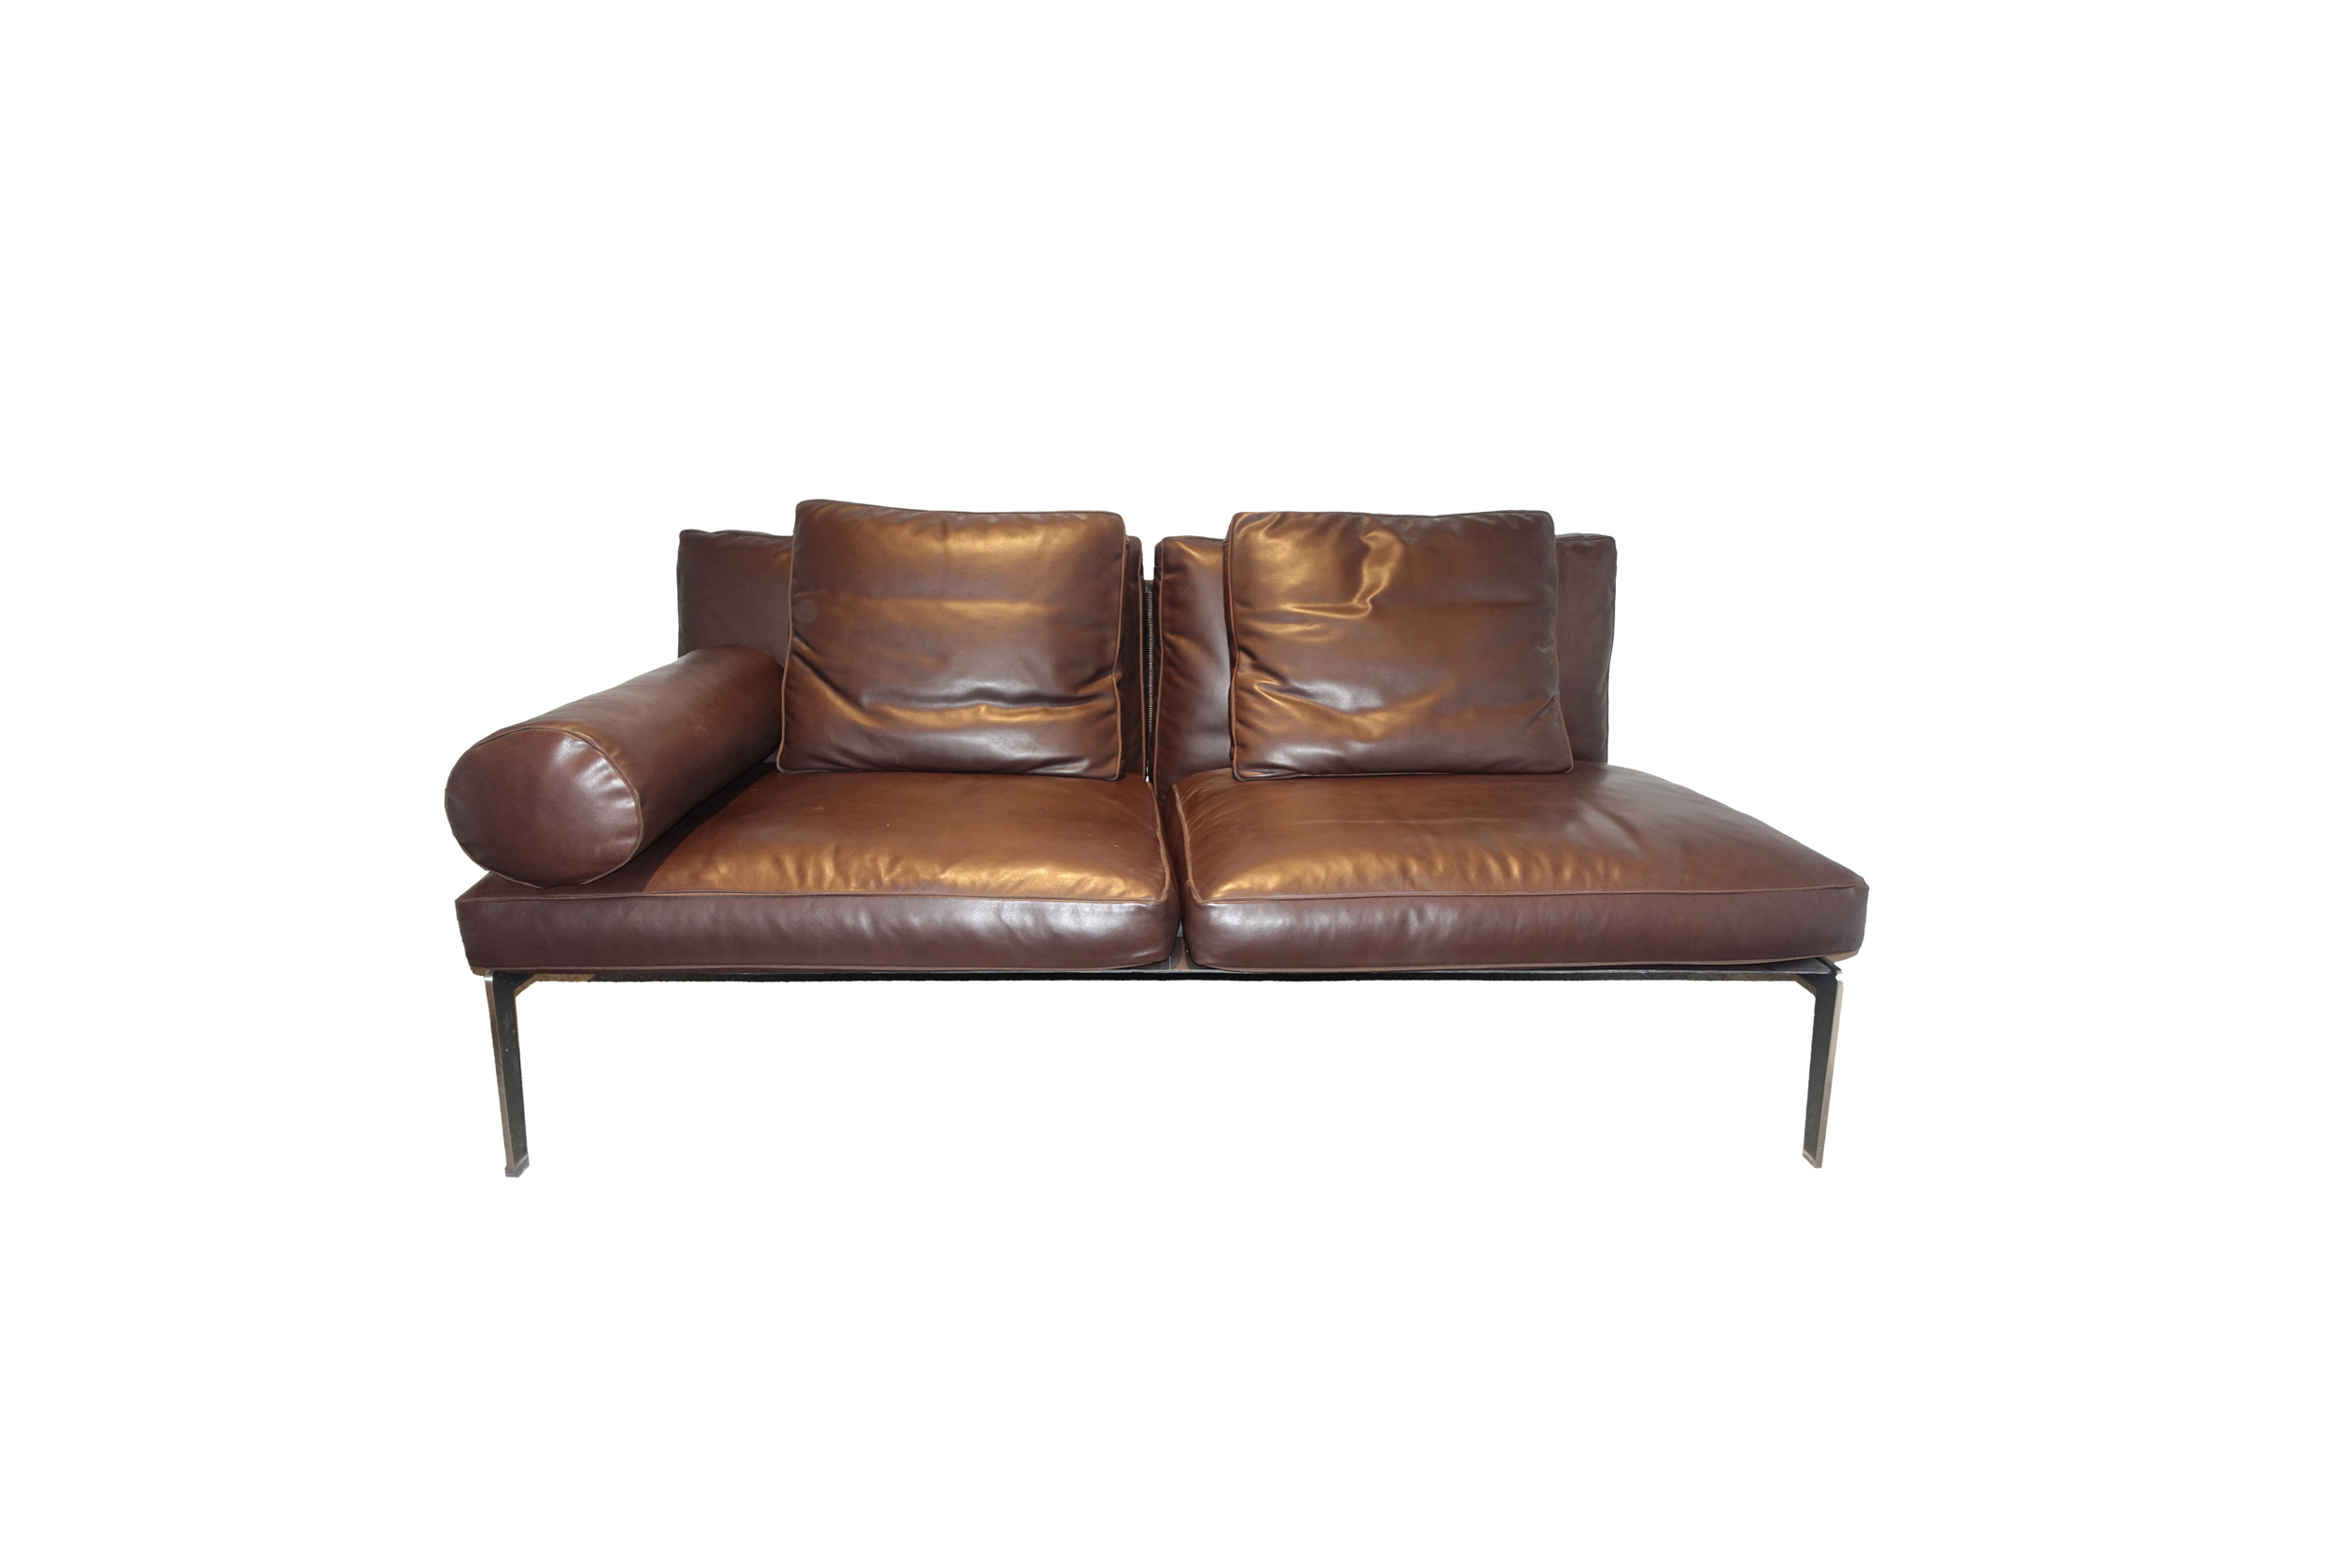 Happy Sofa Antonio Citterio Flexform Rezzoli Designer Furniture